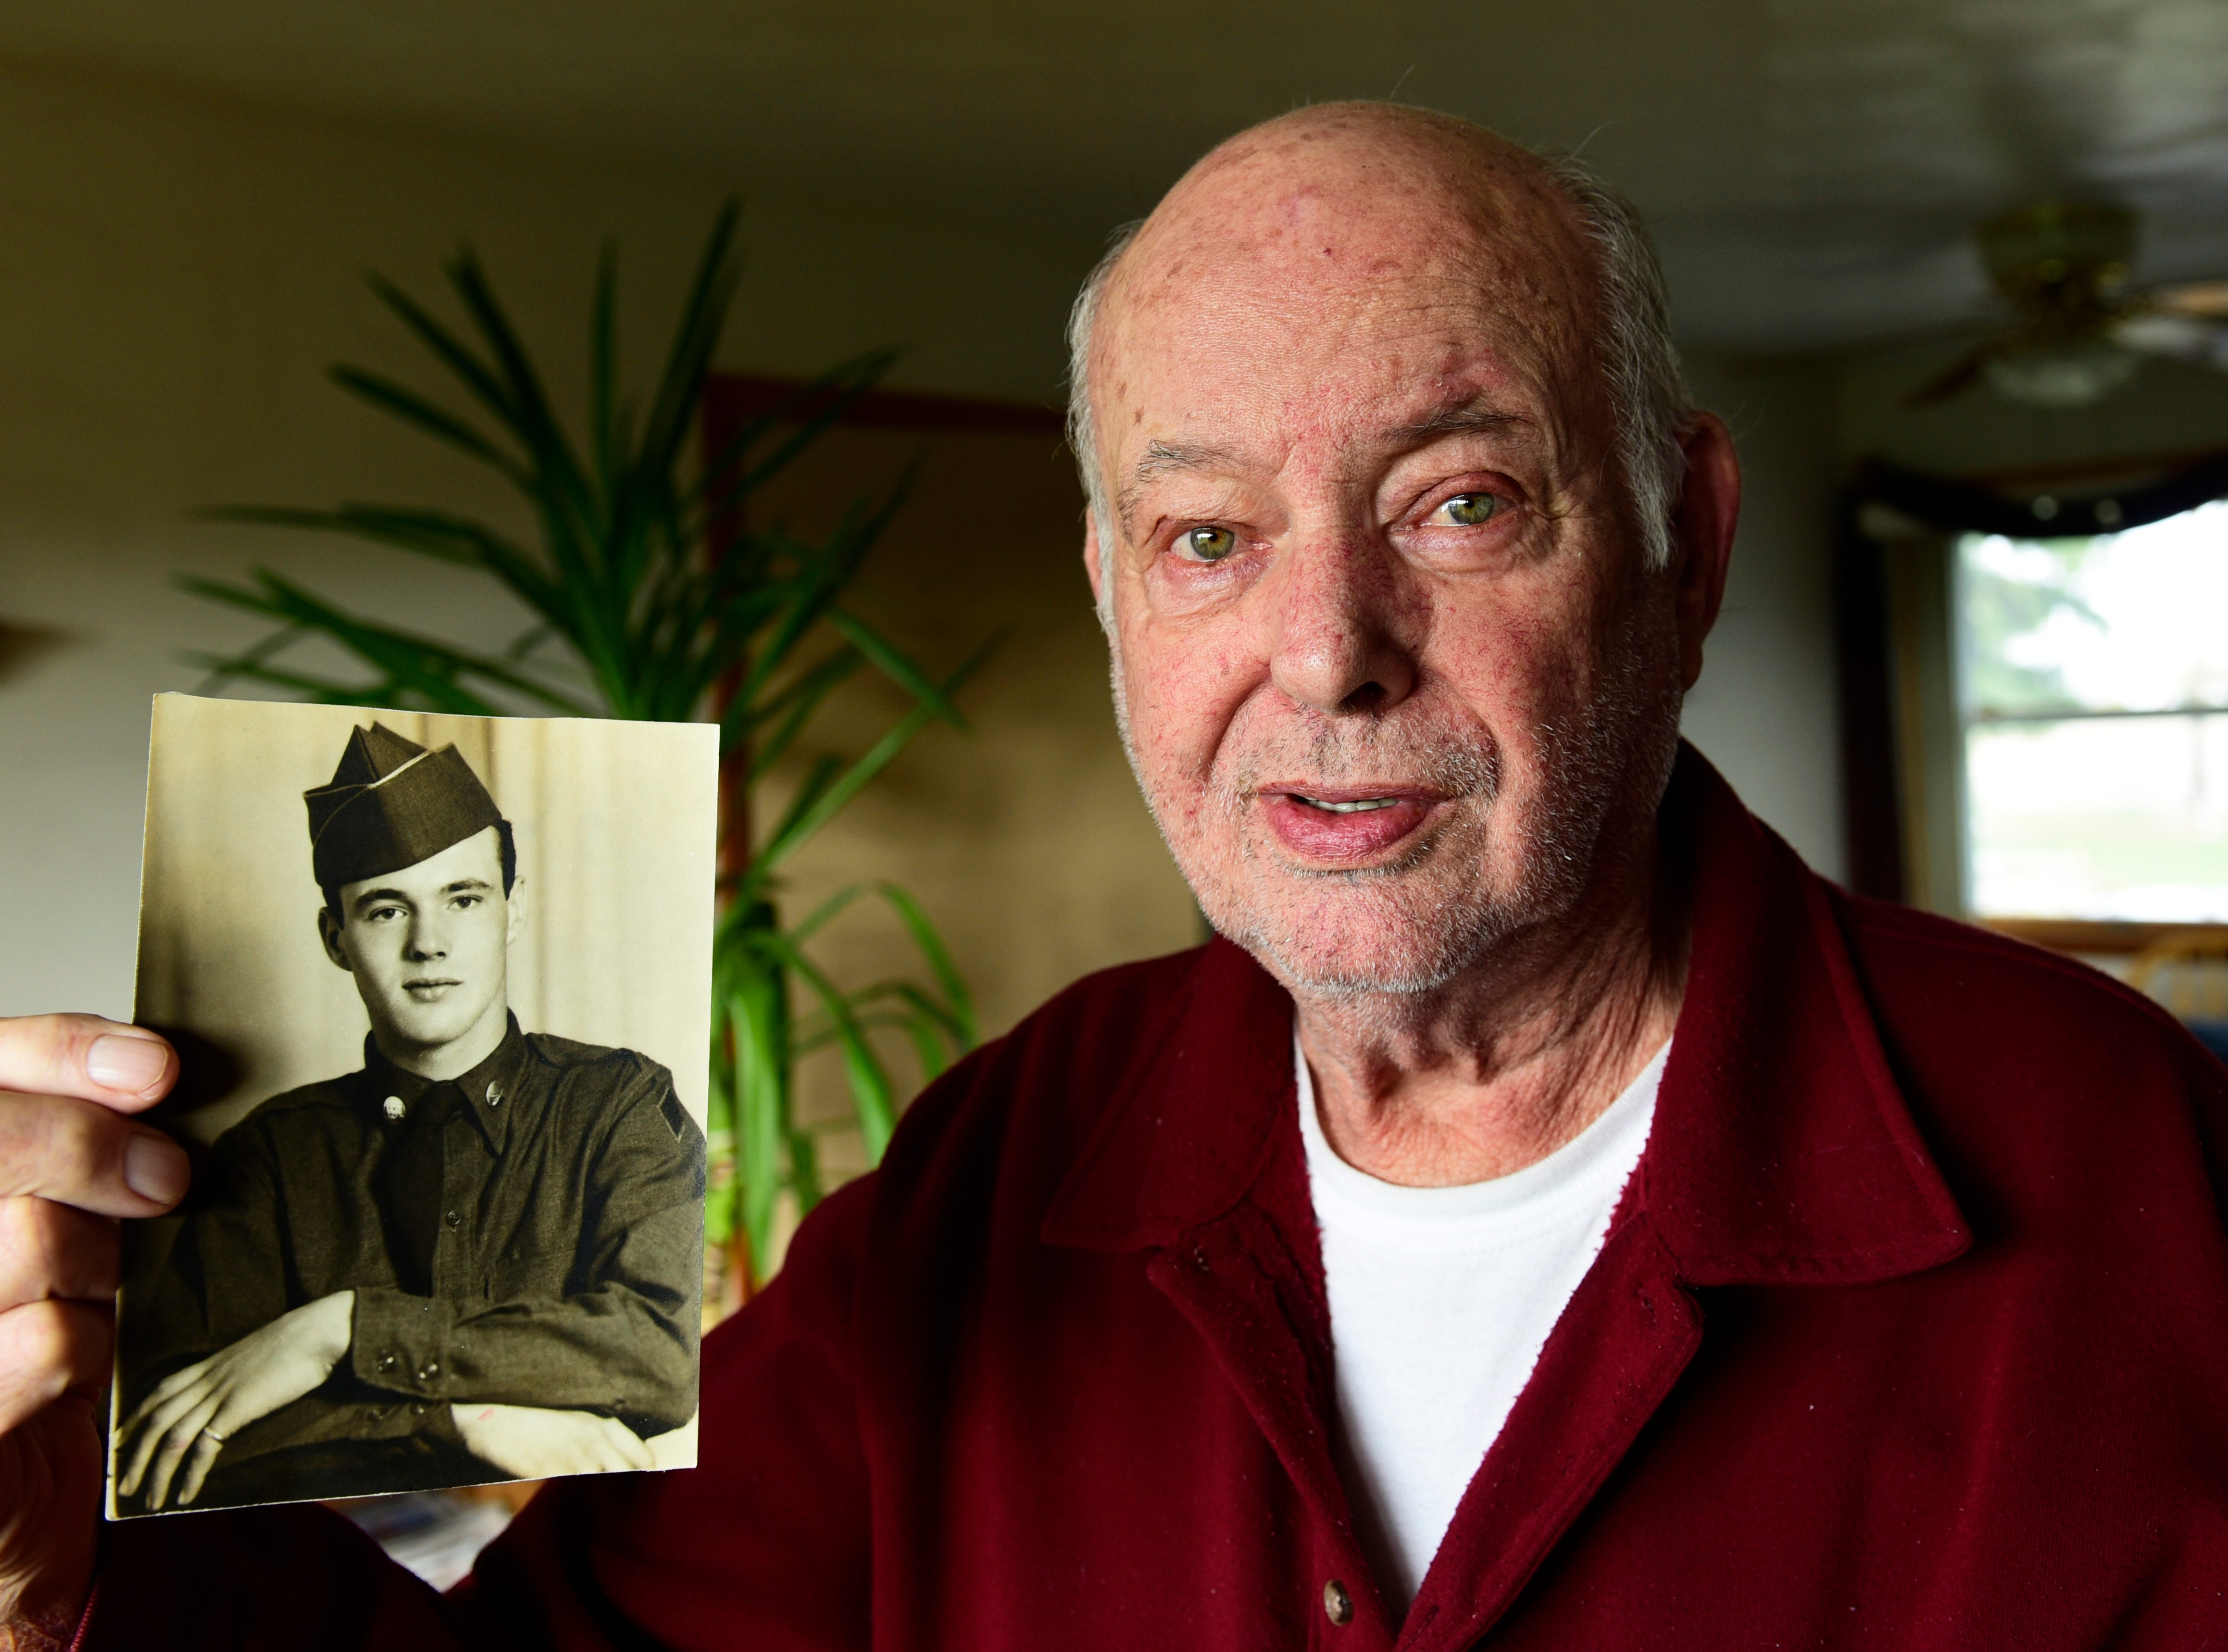 Edward Foose, 87, of Fremont was drafted into the Korean War in 1952 at age 21, a week after he was married. He served in the Army, 40th Signal Co. 40th Infantry Division APO 6 from 1952-1954.